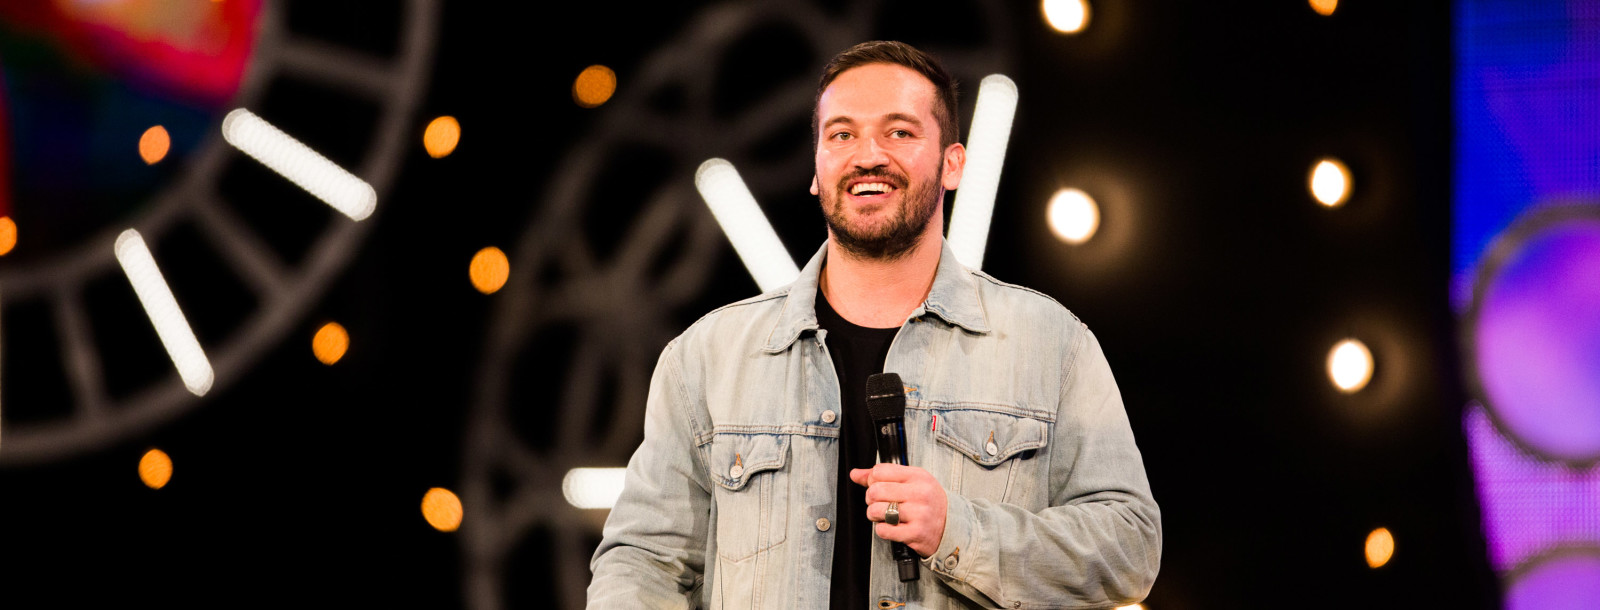 Ben Houston, Lead Pastor LA